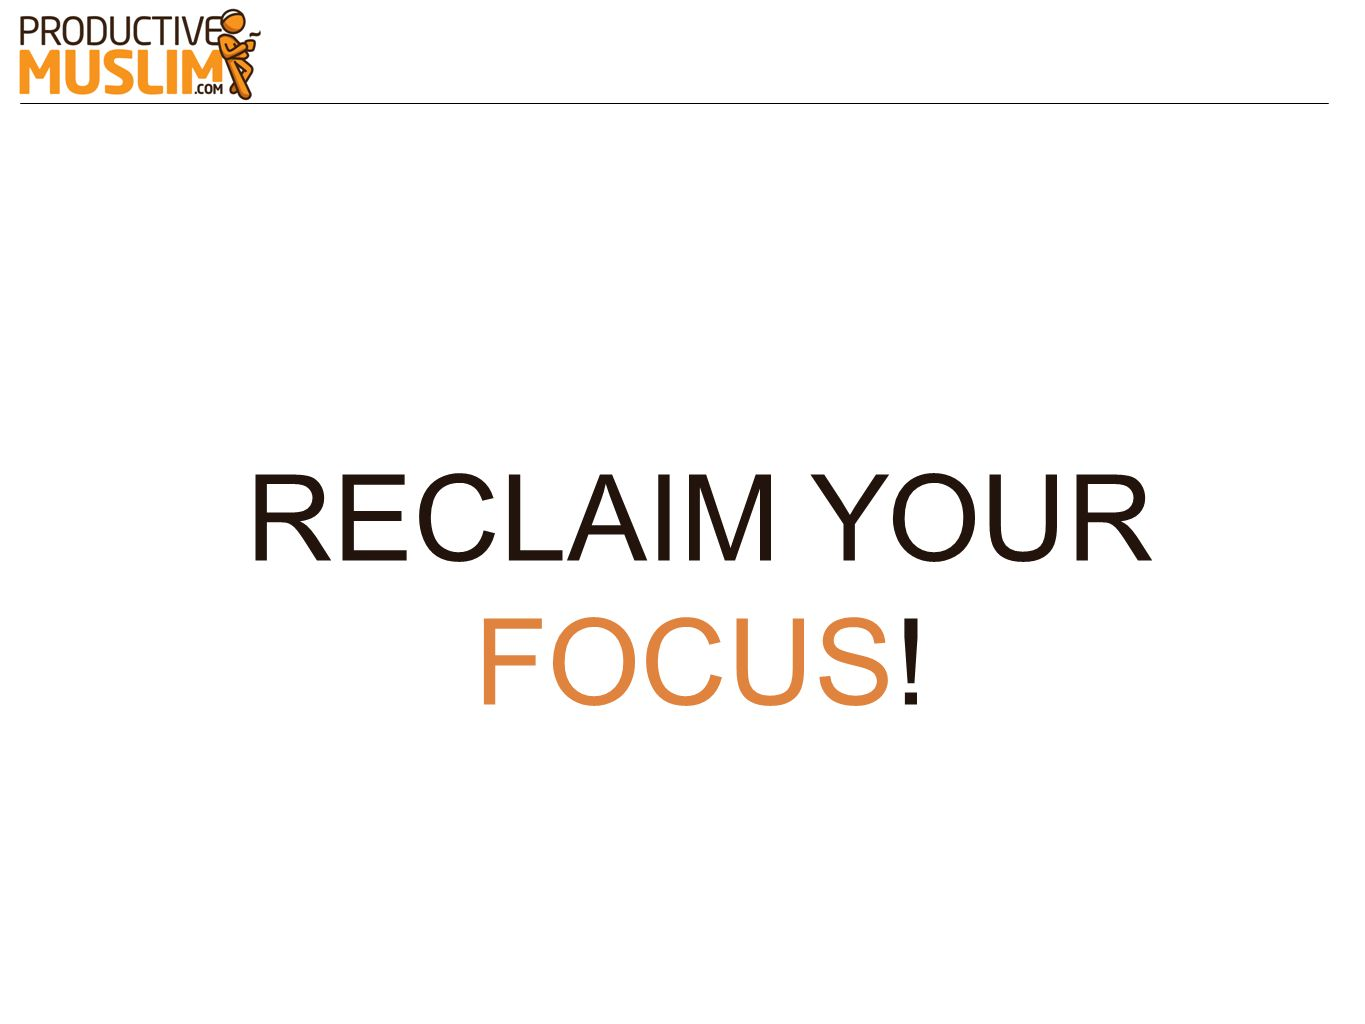 RECLAIM YOUR FOCUS!